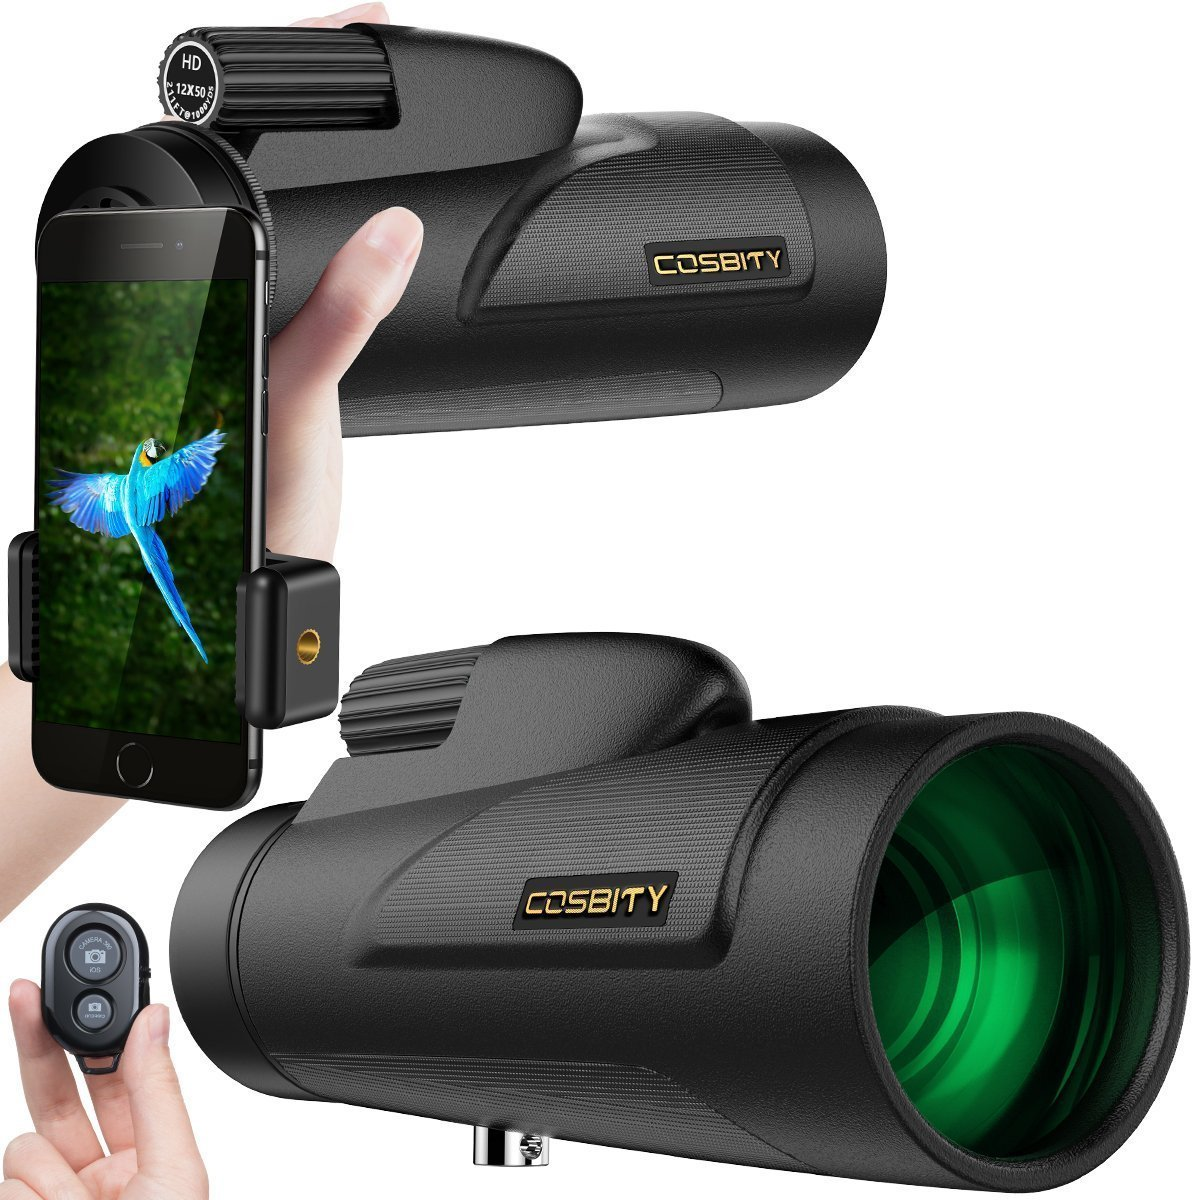 COSBITY Monocular Telescopes, 12x50 High Power Monocular Scope for Adults with Phone Clip and Wireless Camera Shutter Remote Control for Smartphone Bird Watching/Hunting/Camping/Travelling by COSBITY